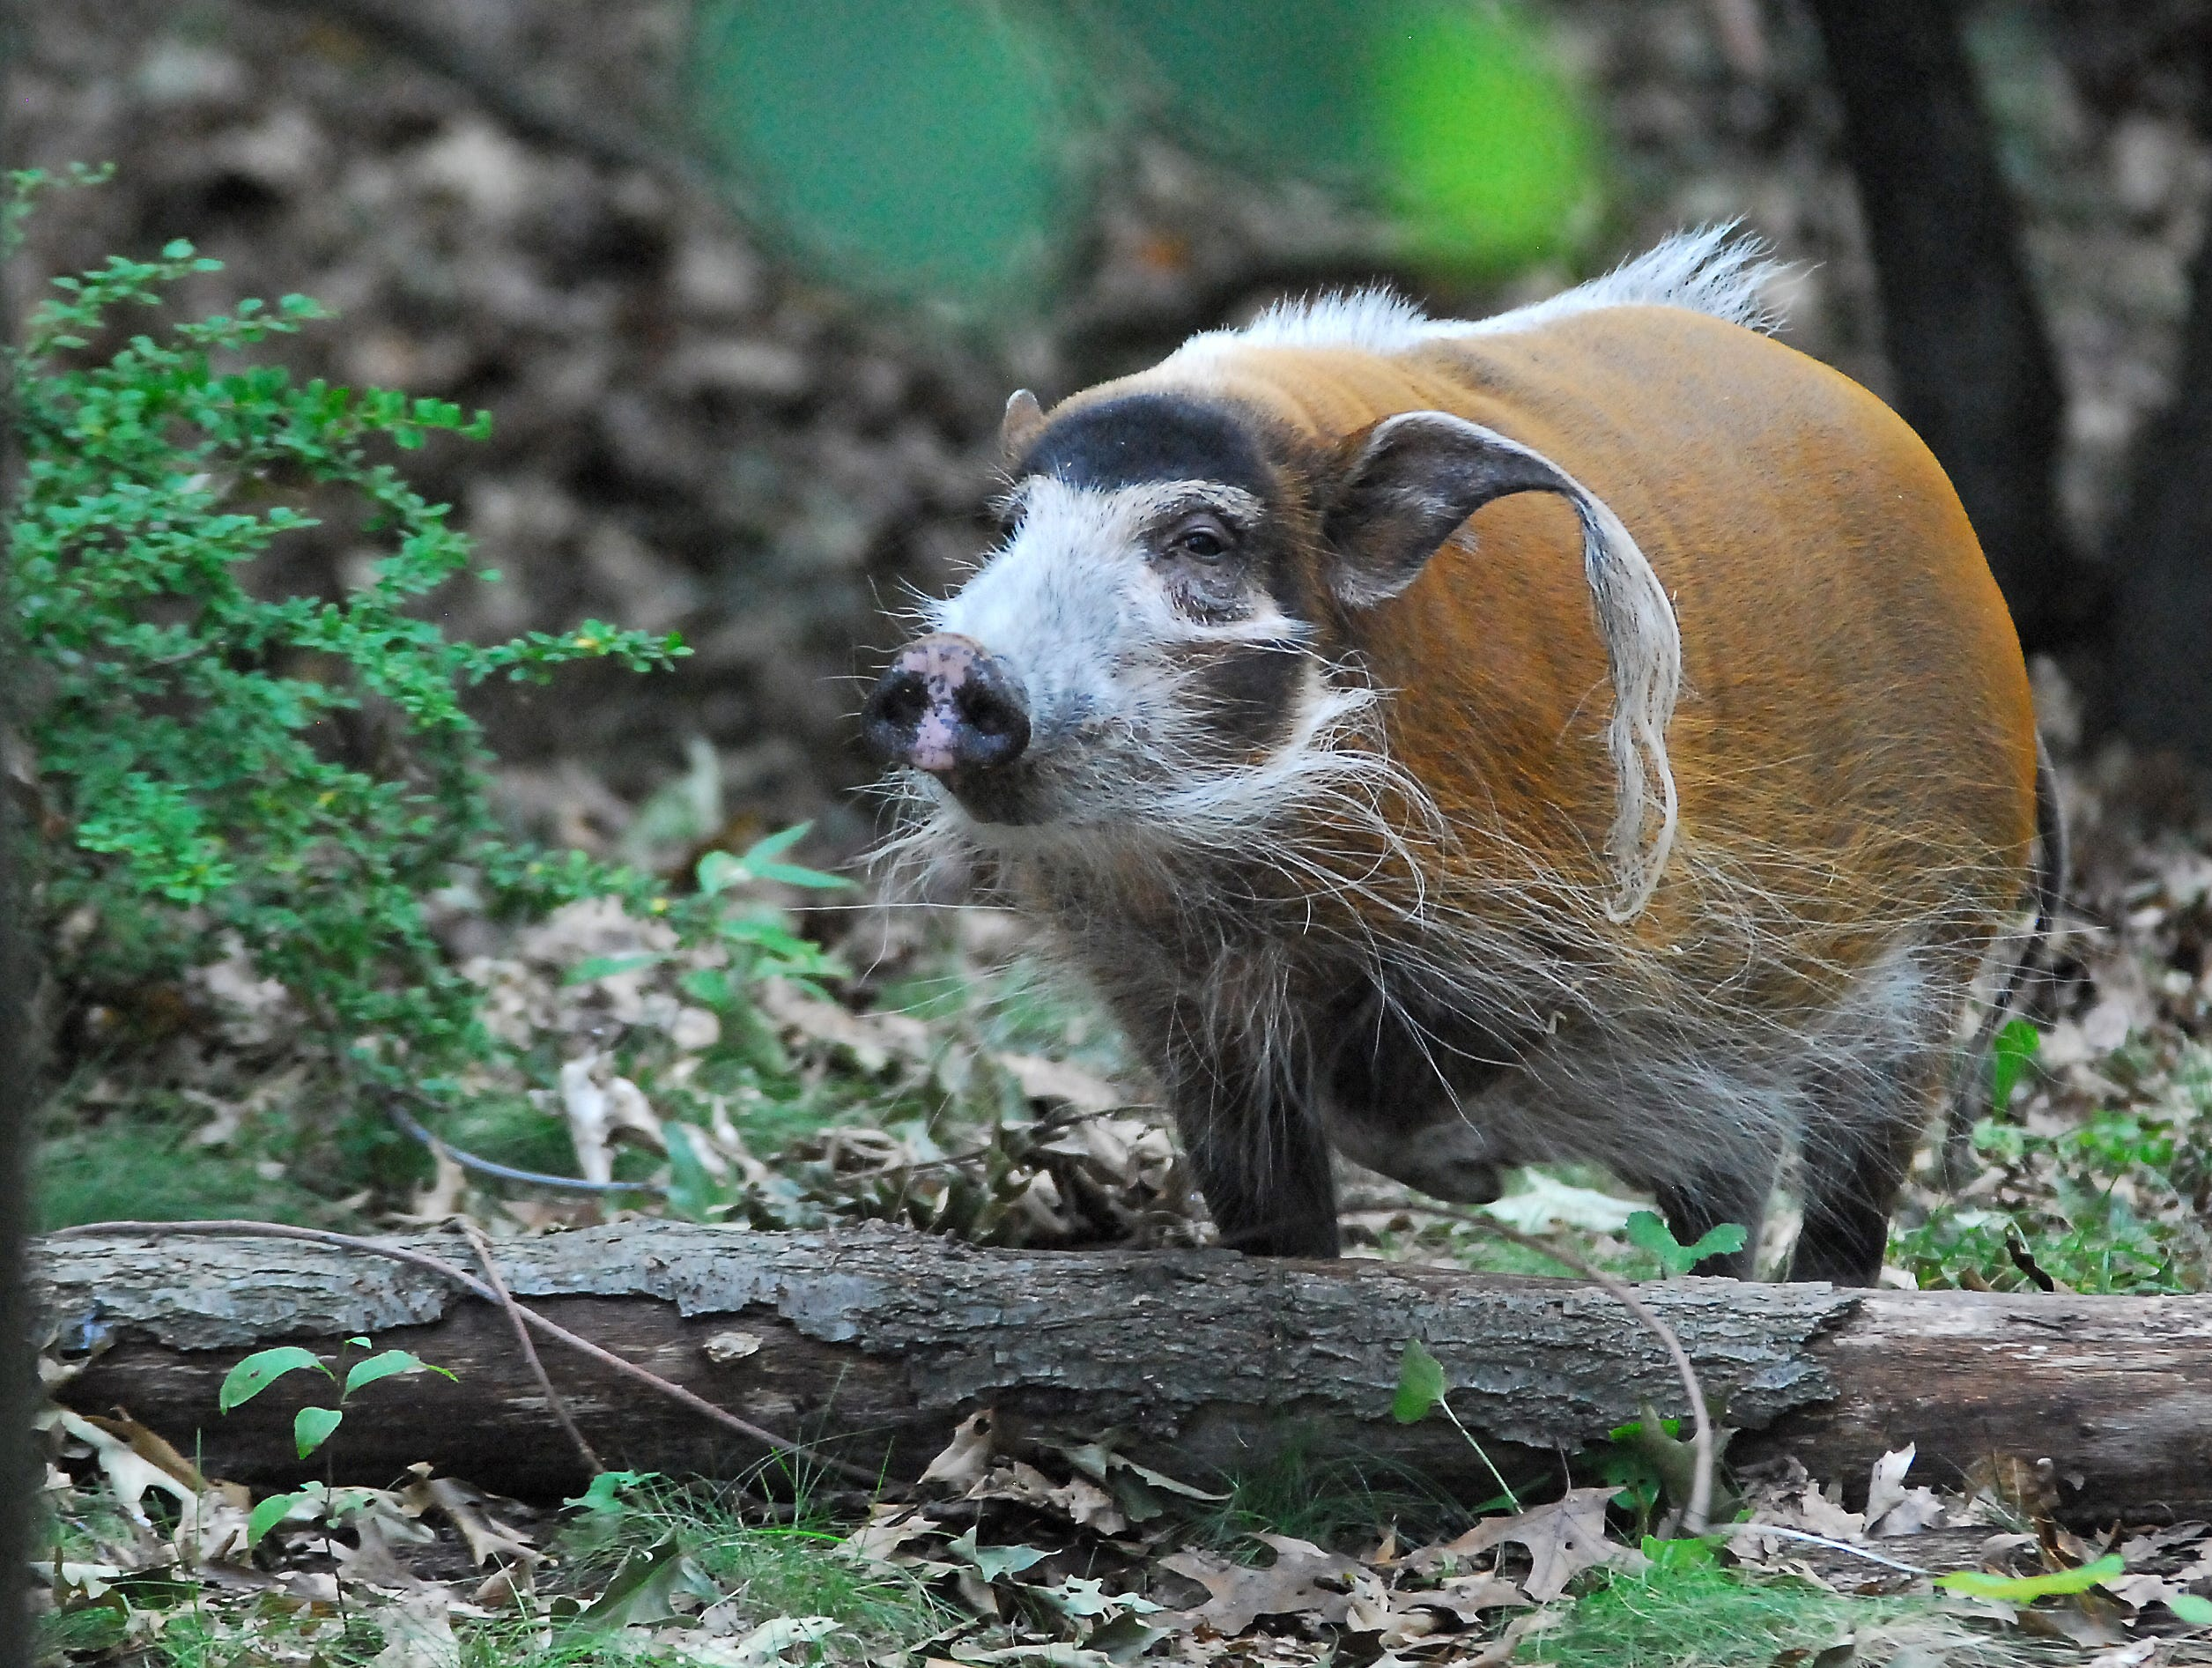 Squeaky, a female Red River Hog, sticks her snout in the air to check a scent at Binder Park Zoo in 2010.